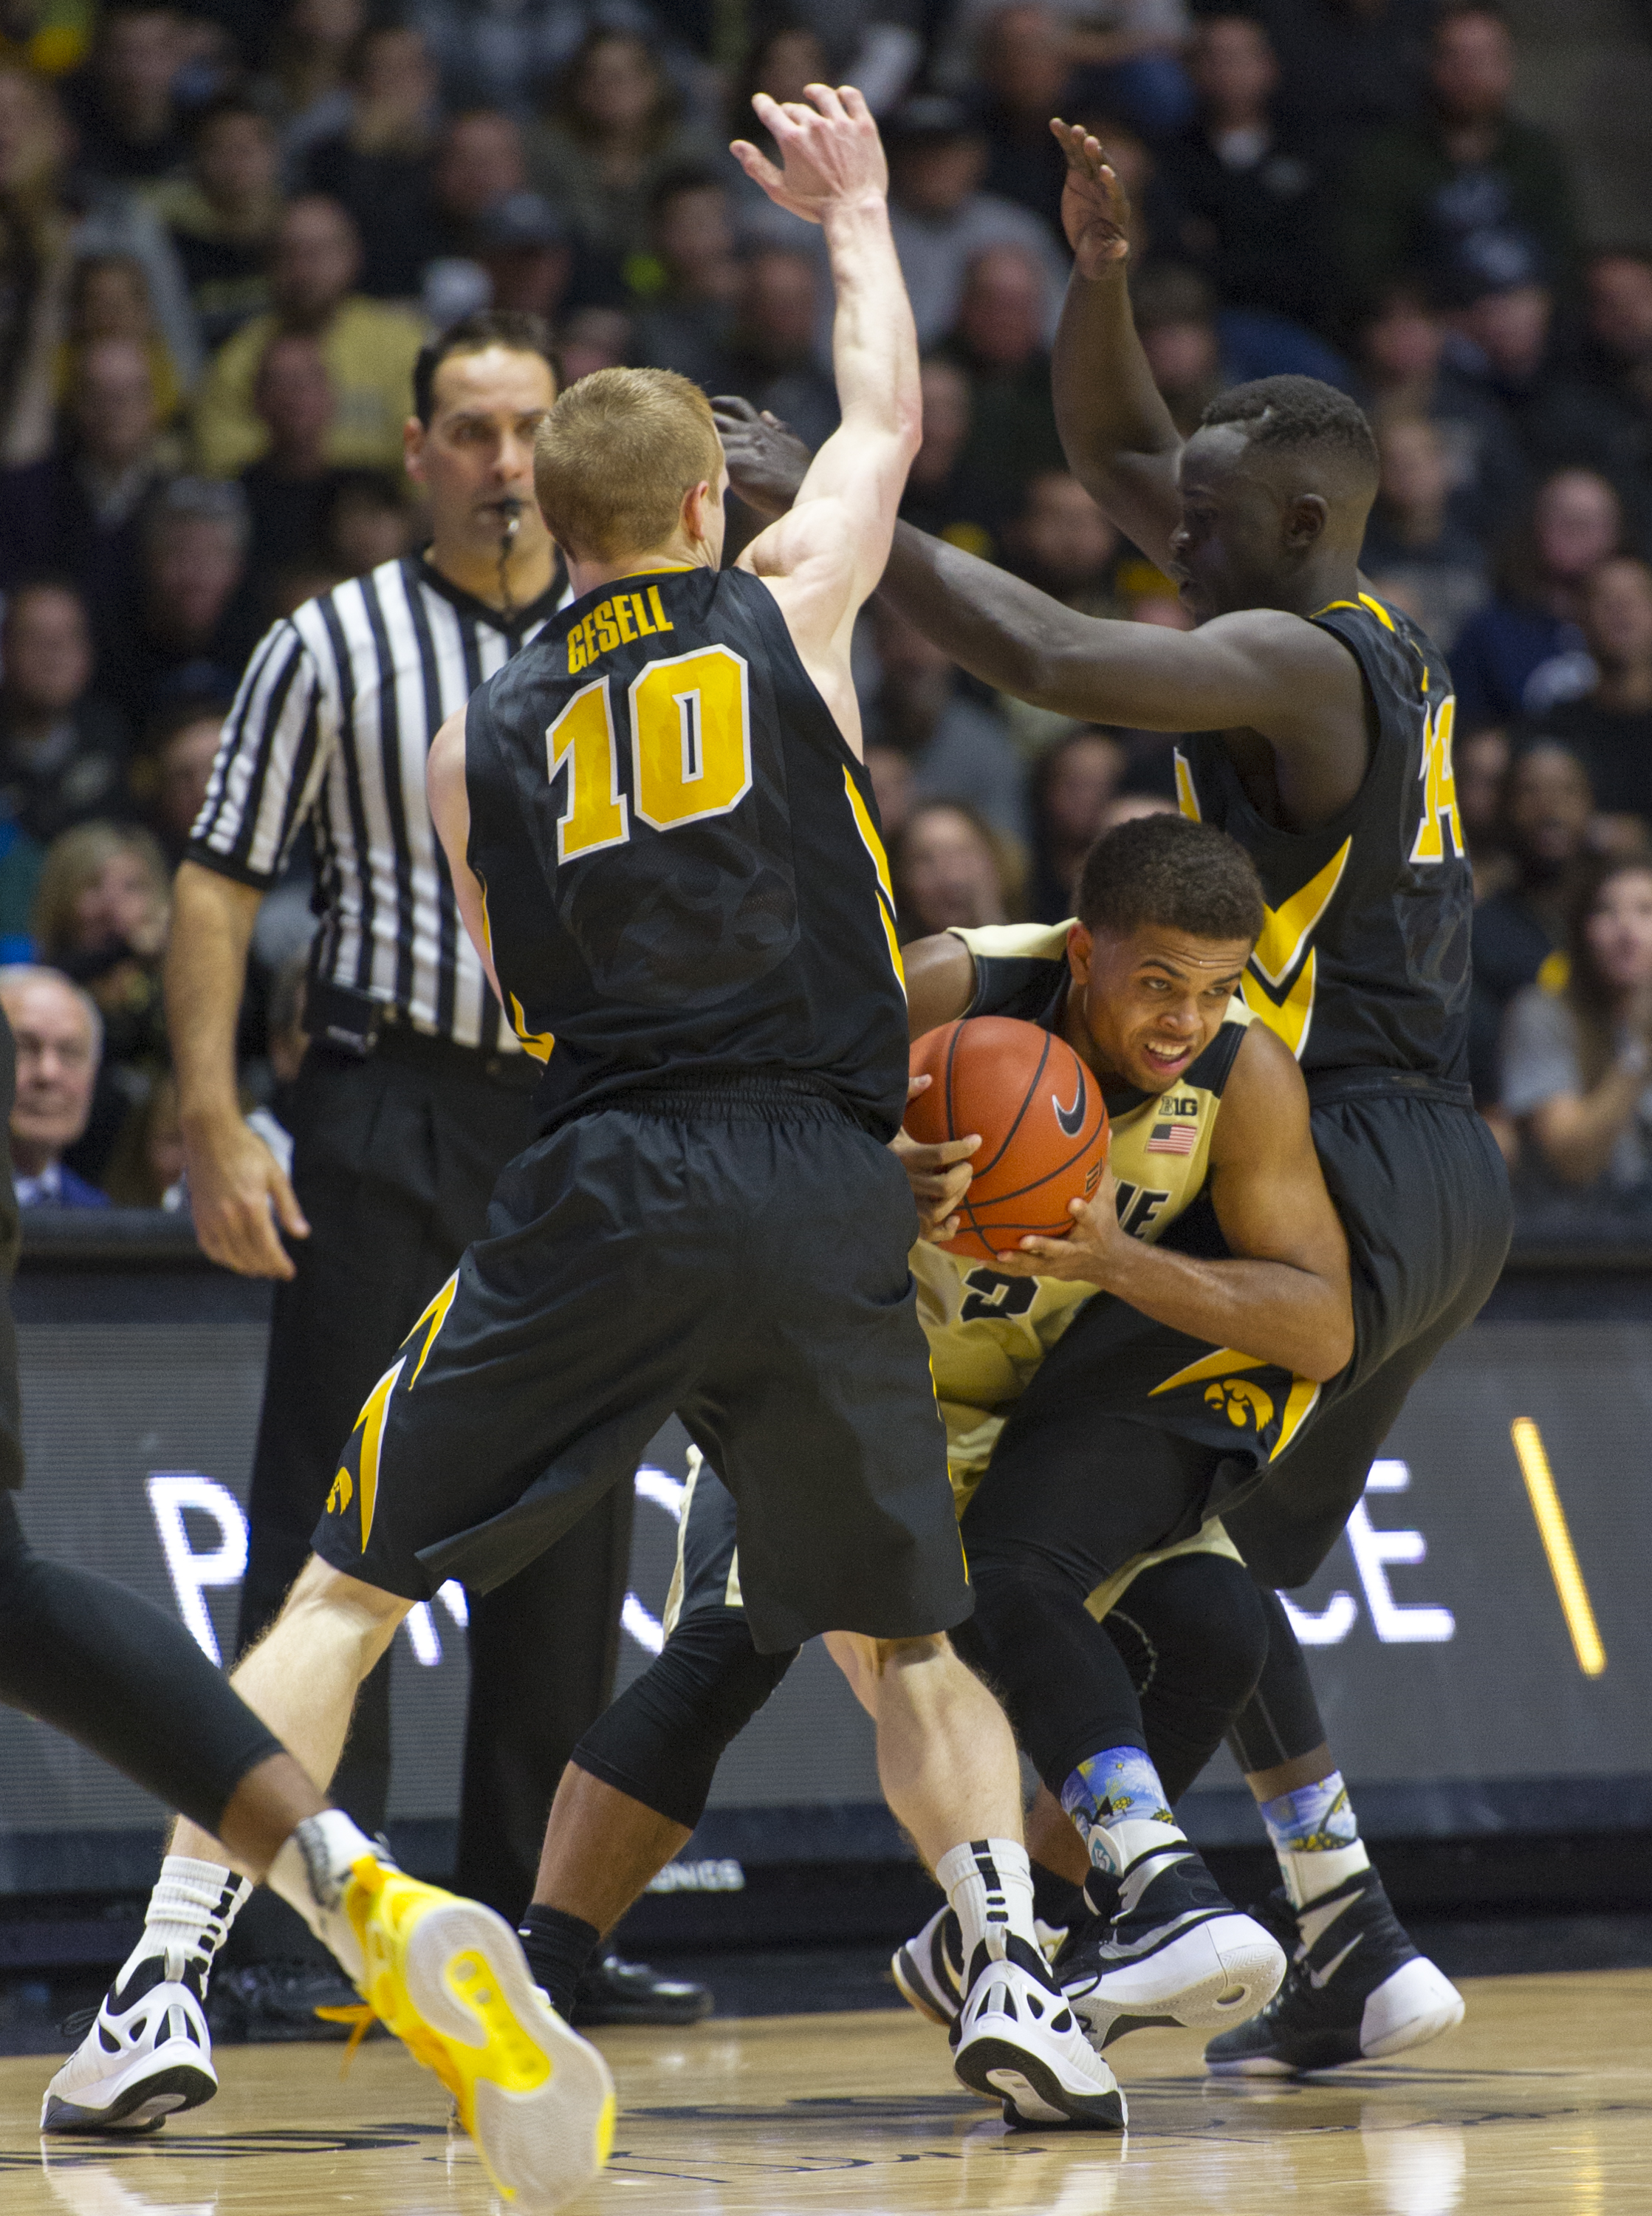 Purdue guard P.J. Thompson, center, is trapped by Iowa guard Mike Gesell, left, and guard Peter Jok, right, during the second half of an NCAA college basketball game, Jan. 2, 2016, in West Lafayette, Ind. Iowa won 70-63. (AP Photo/Doug McSchooler)